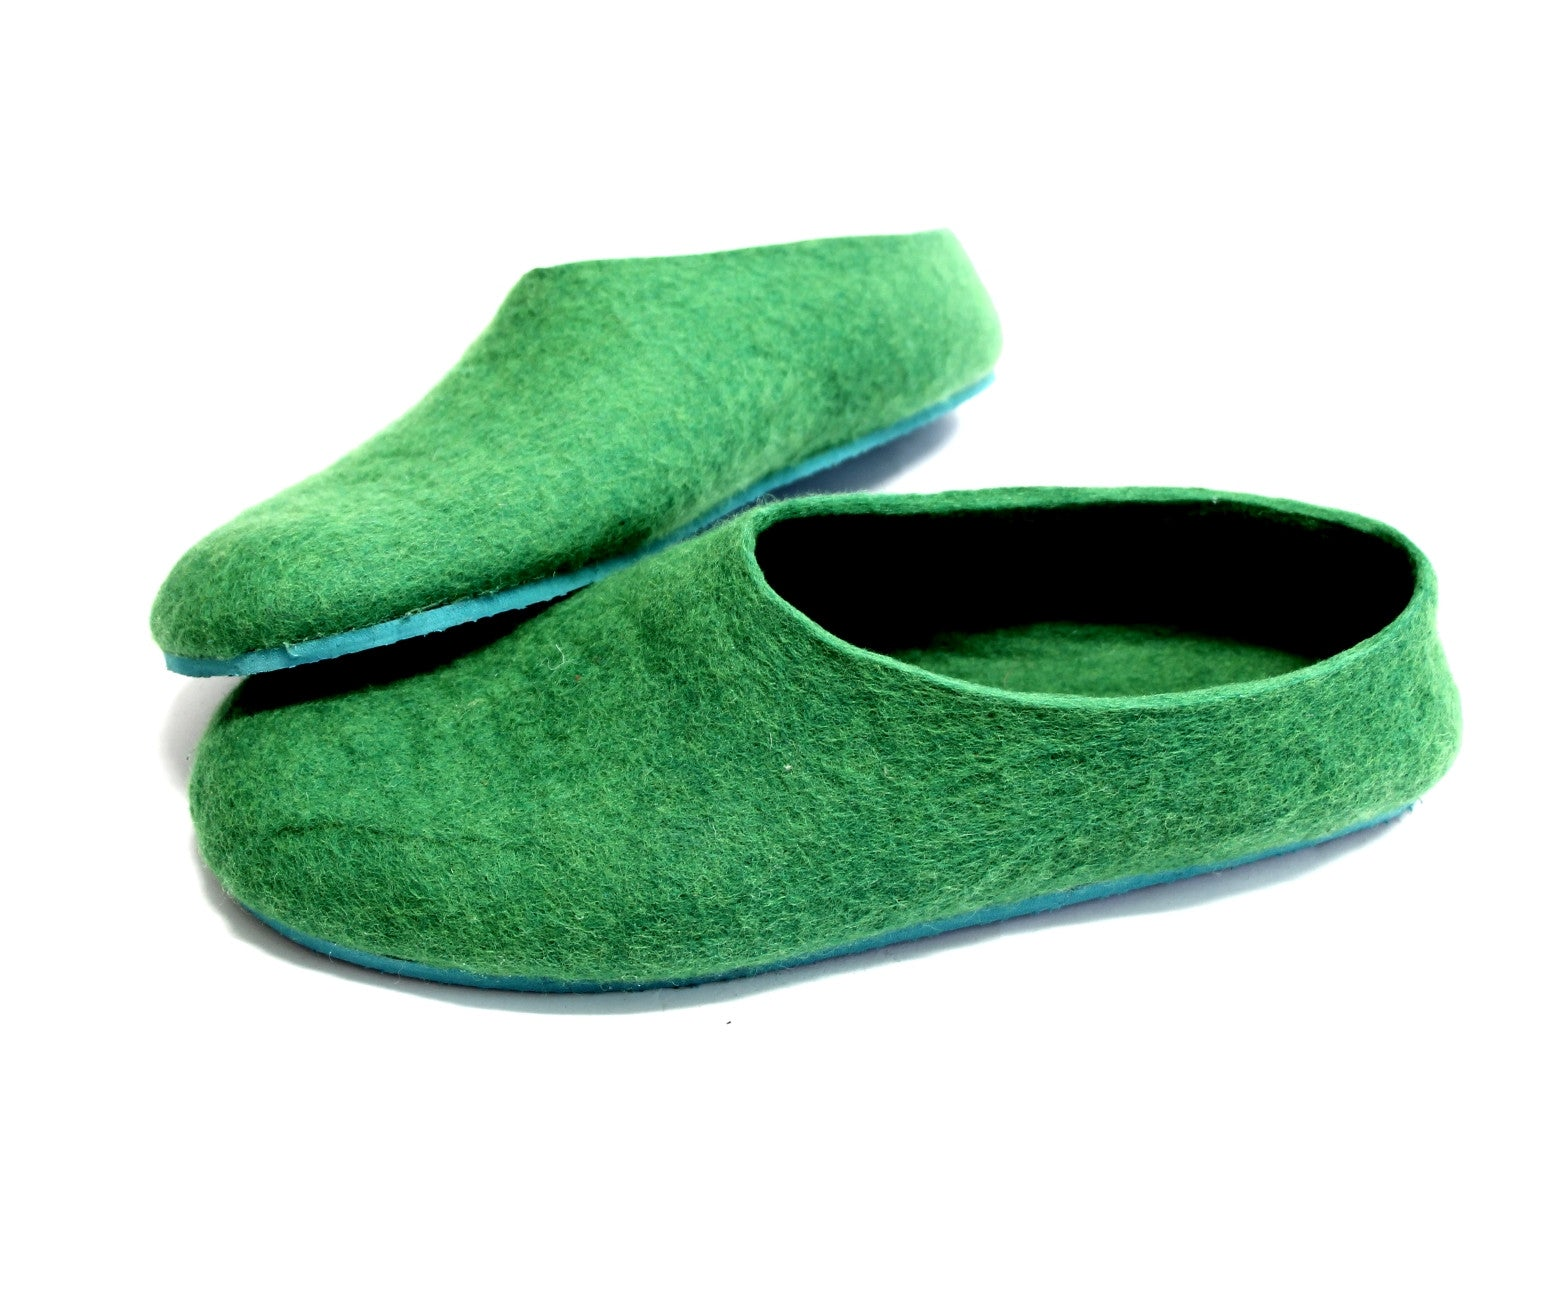 Mens Felt Slippers Green Tree Top Contrast Sole - Wool Walker  - 2